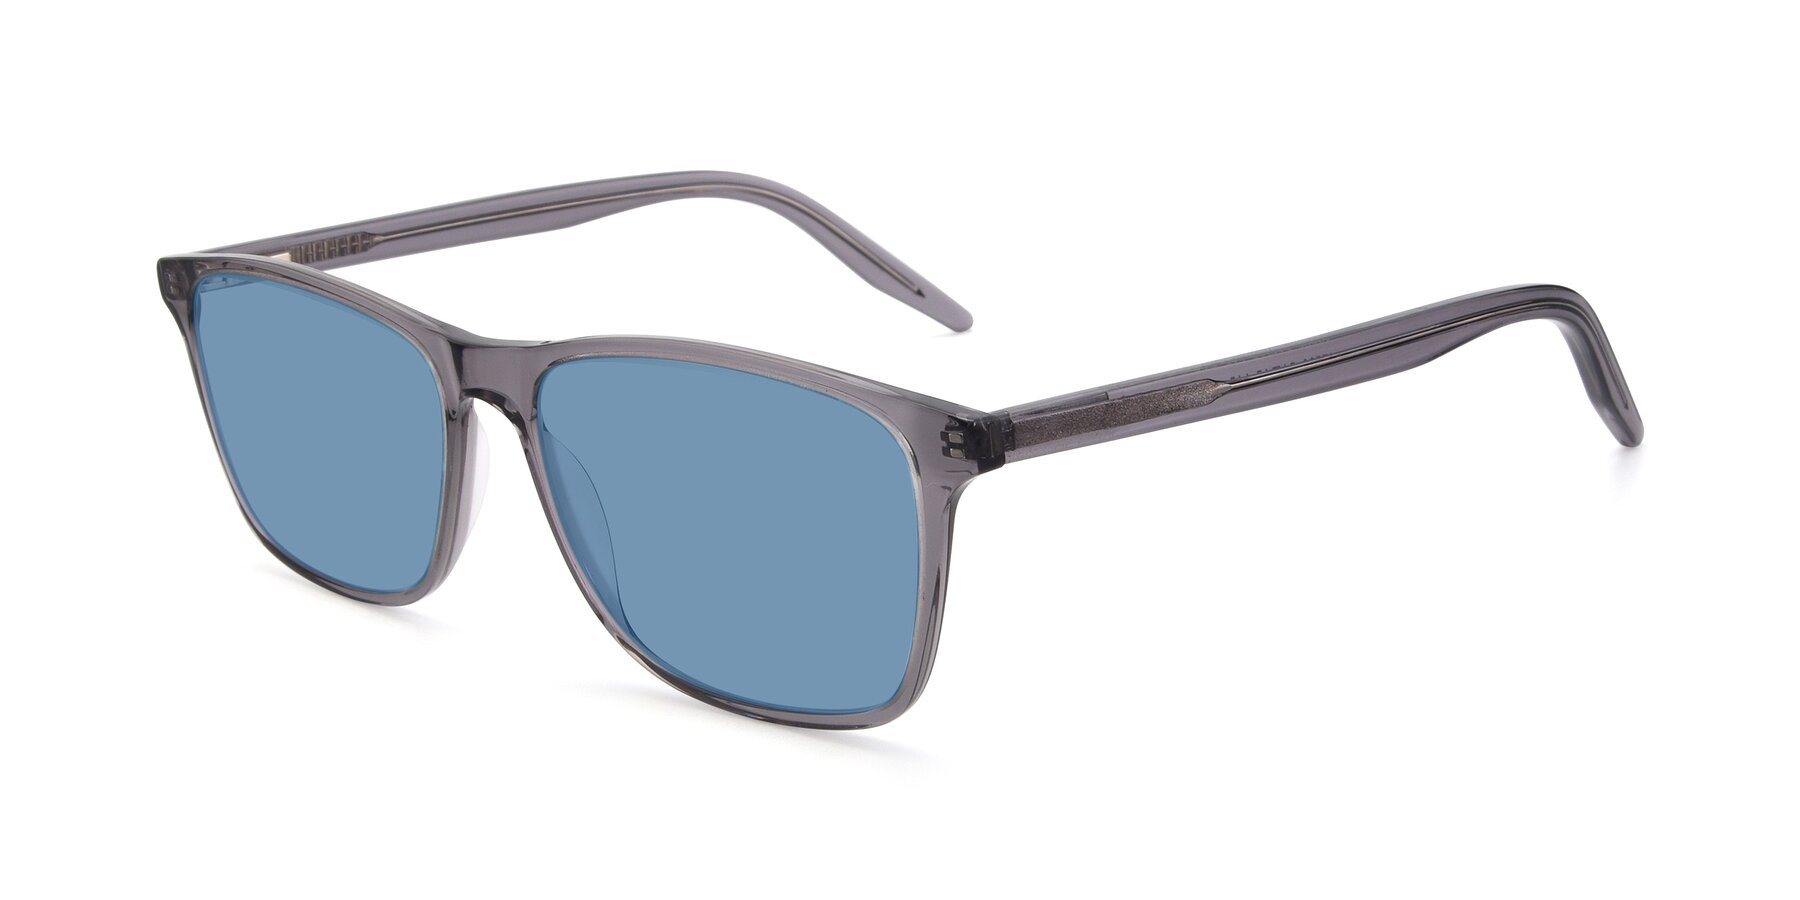 Angle of 17500 in Transparent Grey with Medium Blue Tinted Lenses